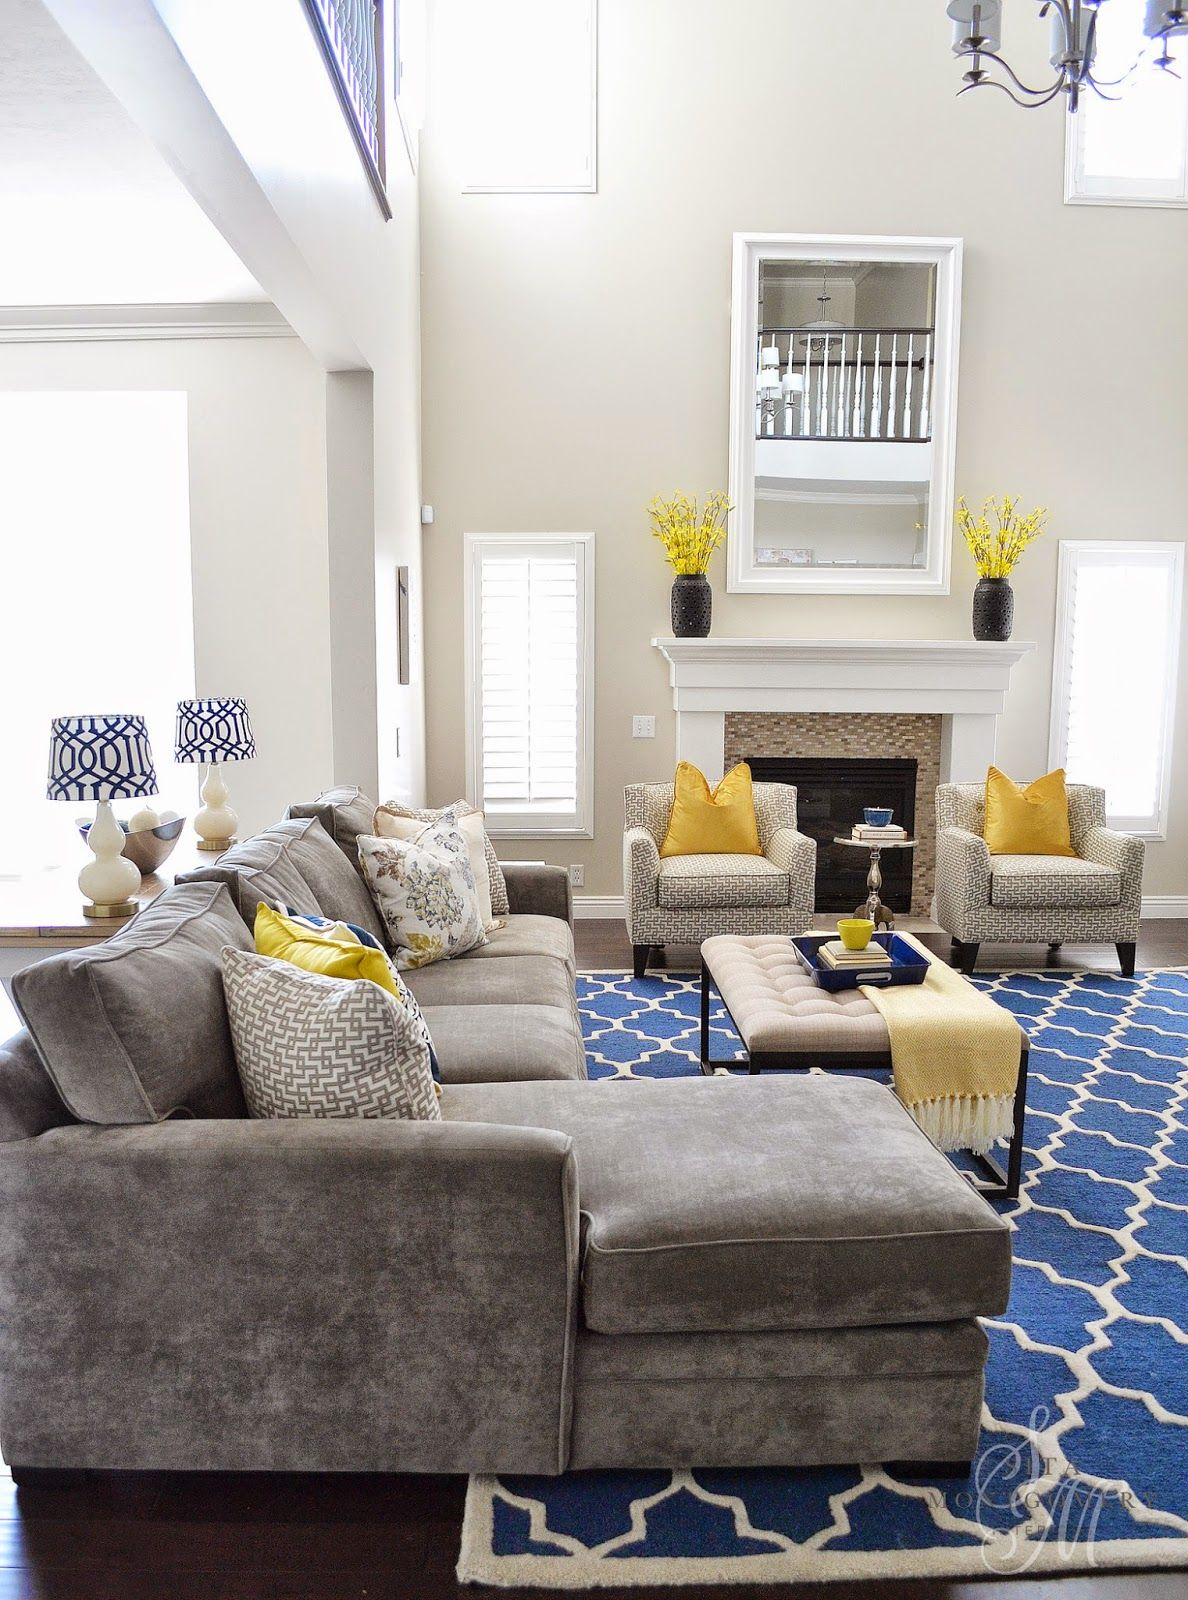 Sita Montgomery Interiors Client Project Reveal The Summerwood Project Renovation See More